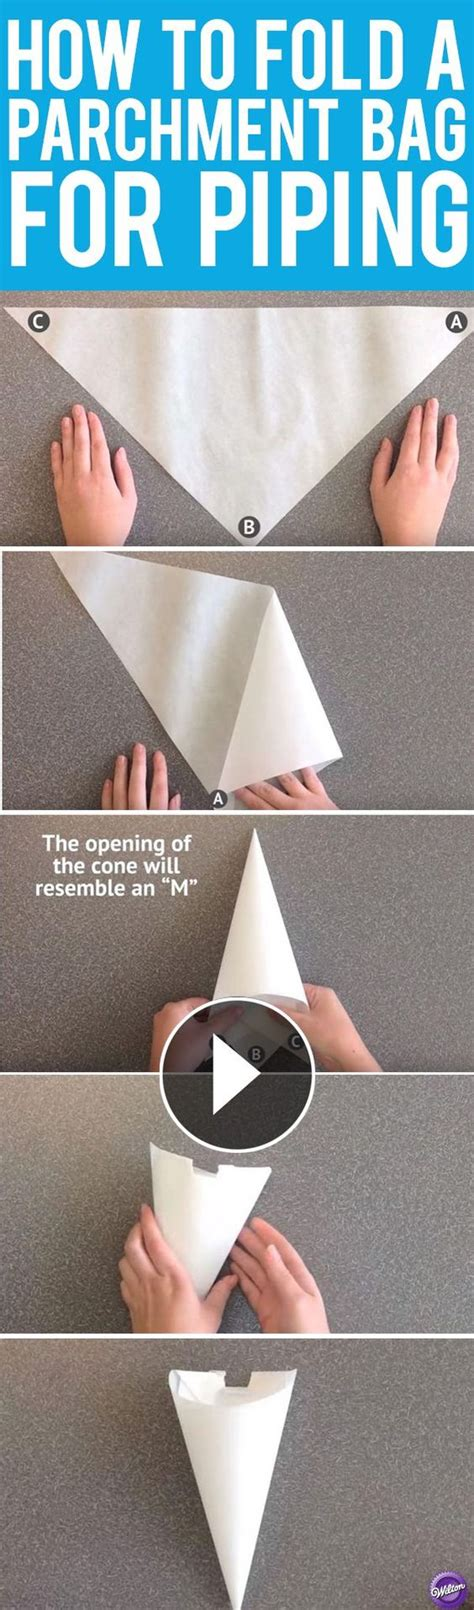 How To Make A Piping Bag Out Of Paper - learn how to make a piping bag out of parchment paper